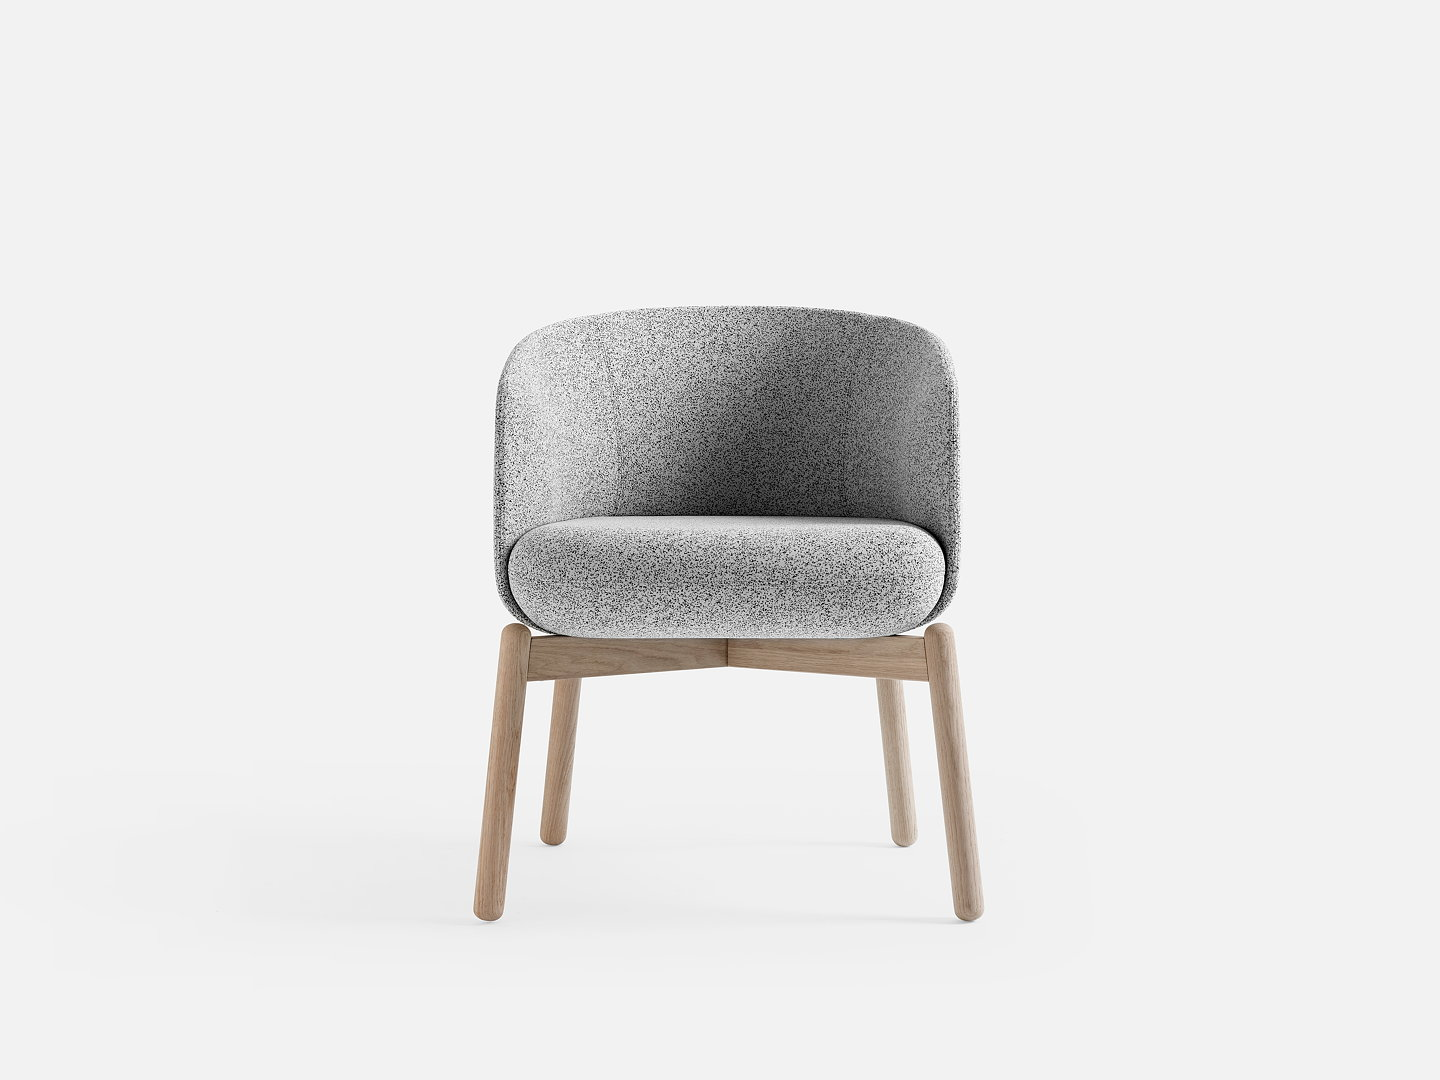 Form Us With Love Expands Nest Collection